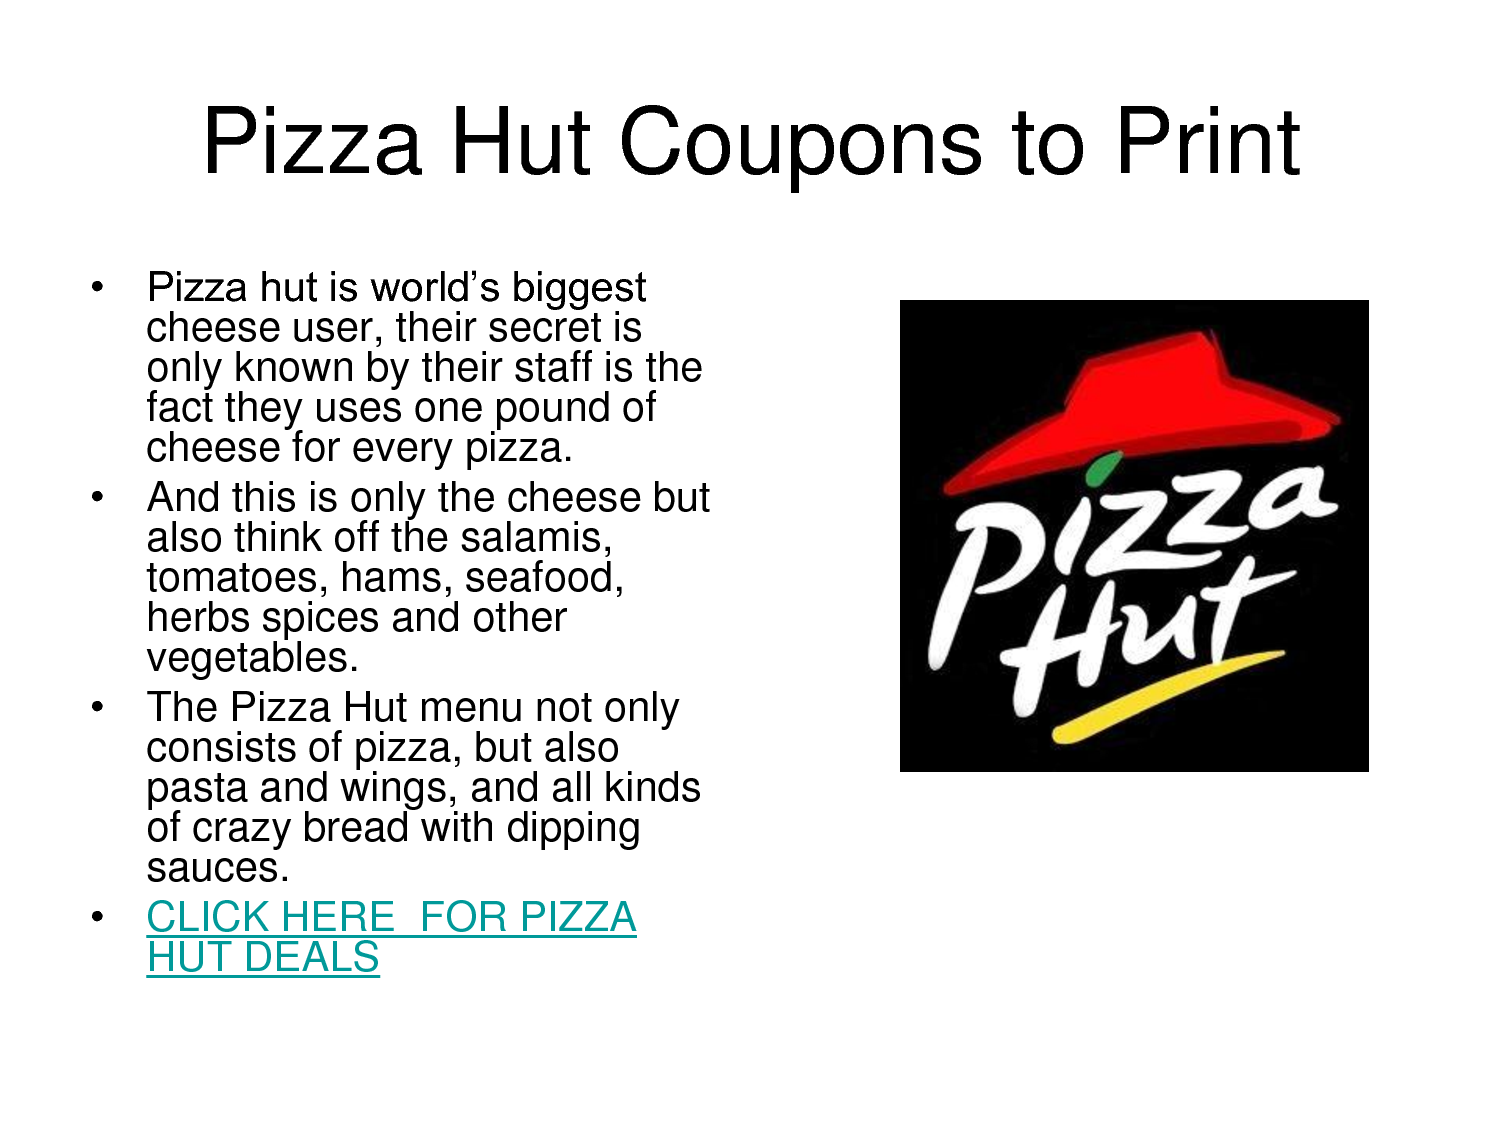 Pizza hut coupons code